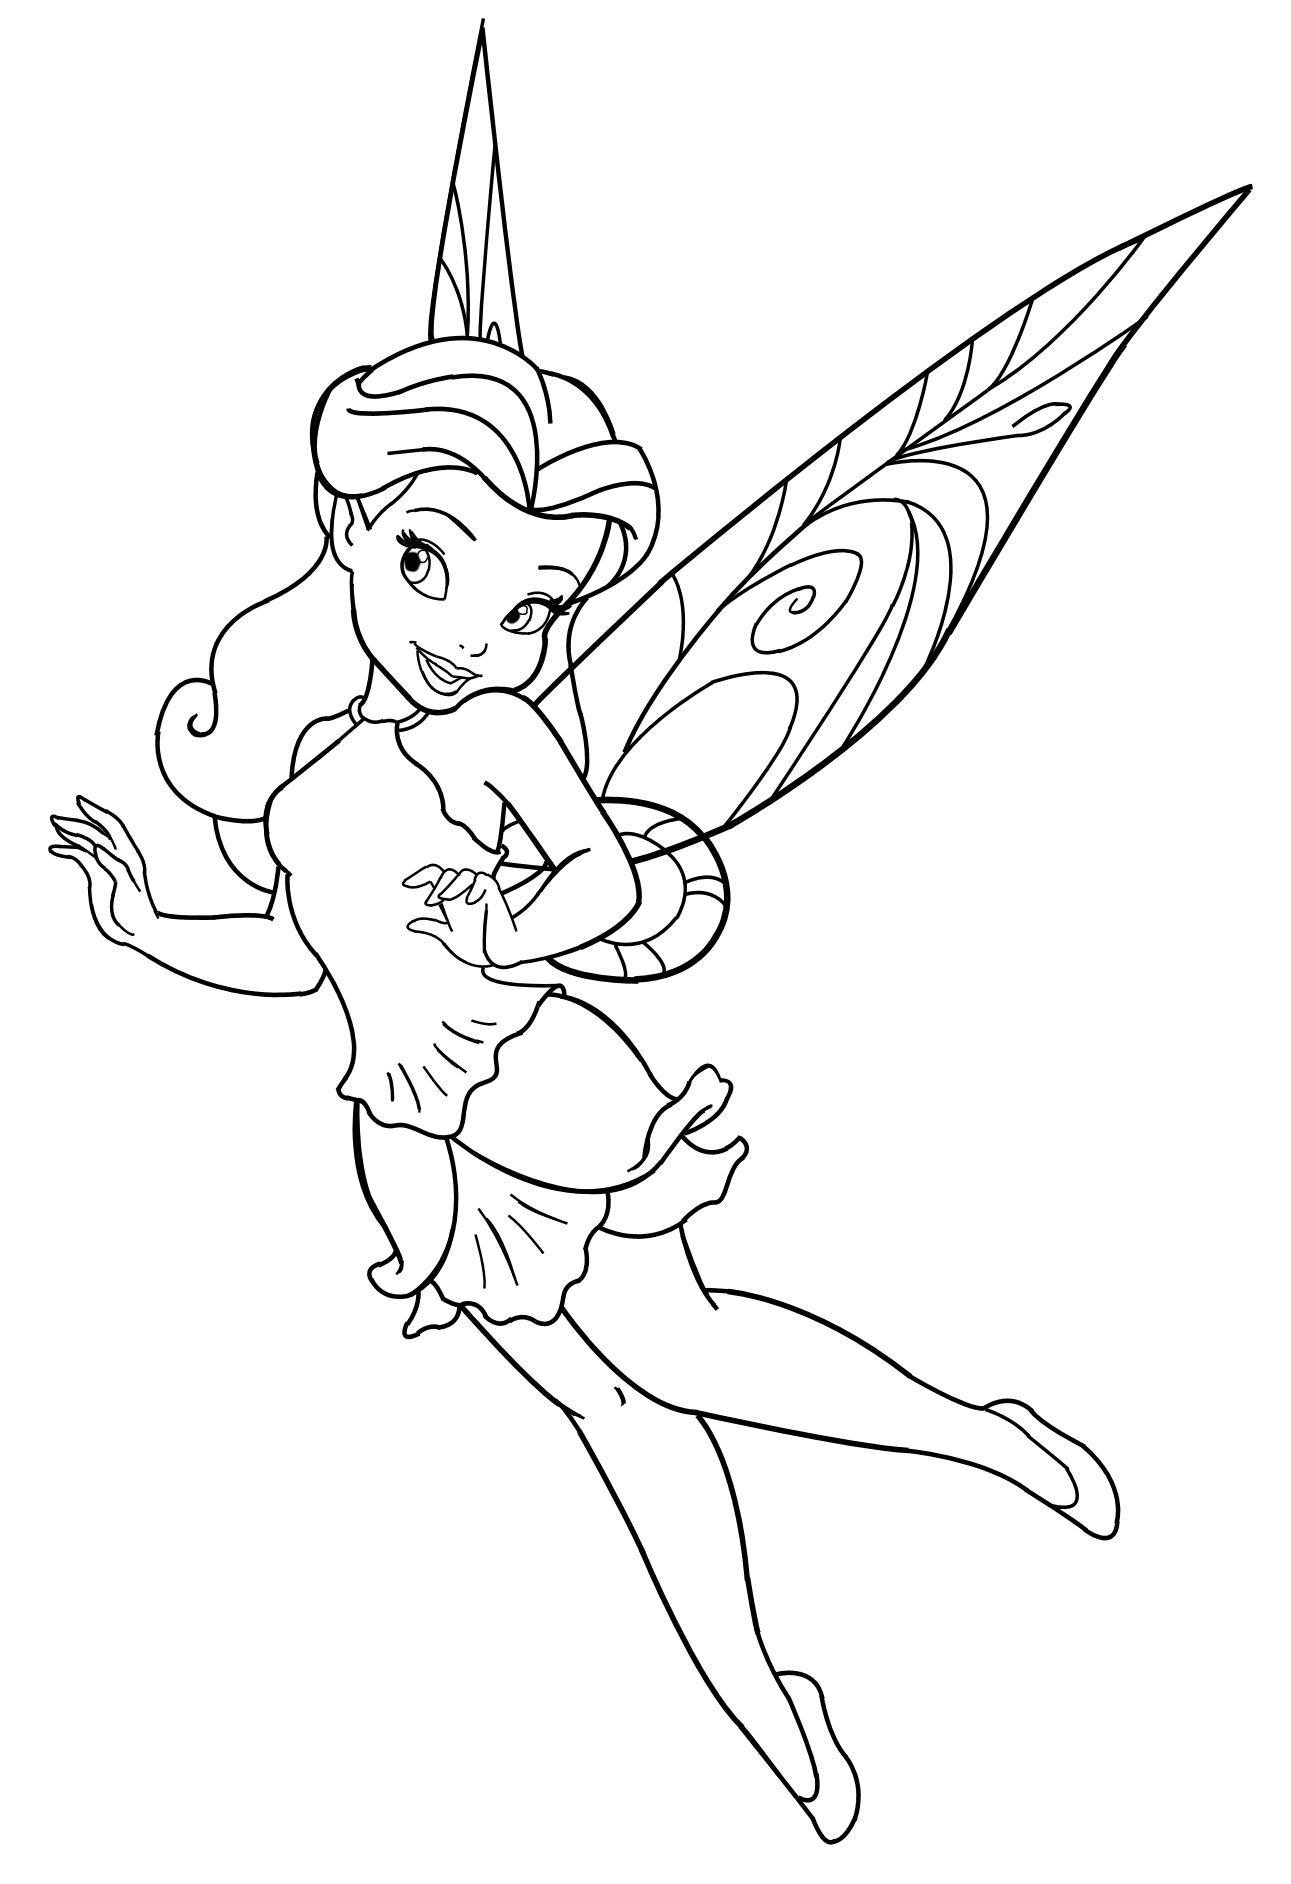 Rosetta Colouring Page Tinkerbell Coloring Pages Fairy Coloring Pages Fairy Coloring